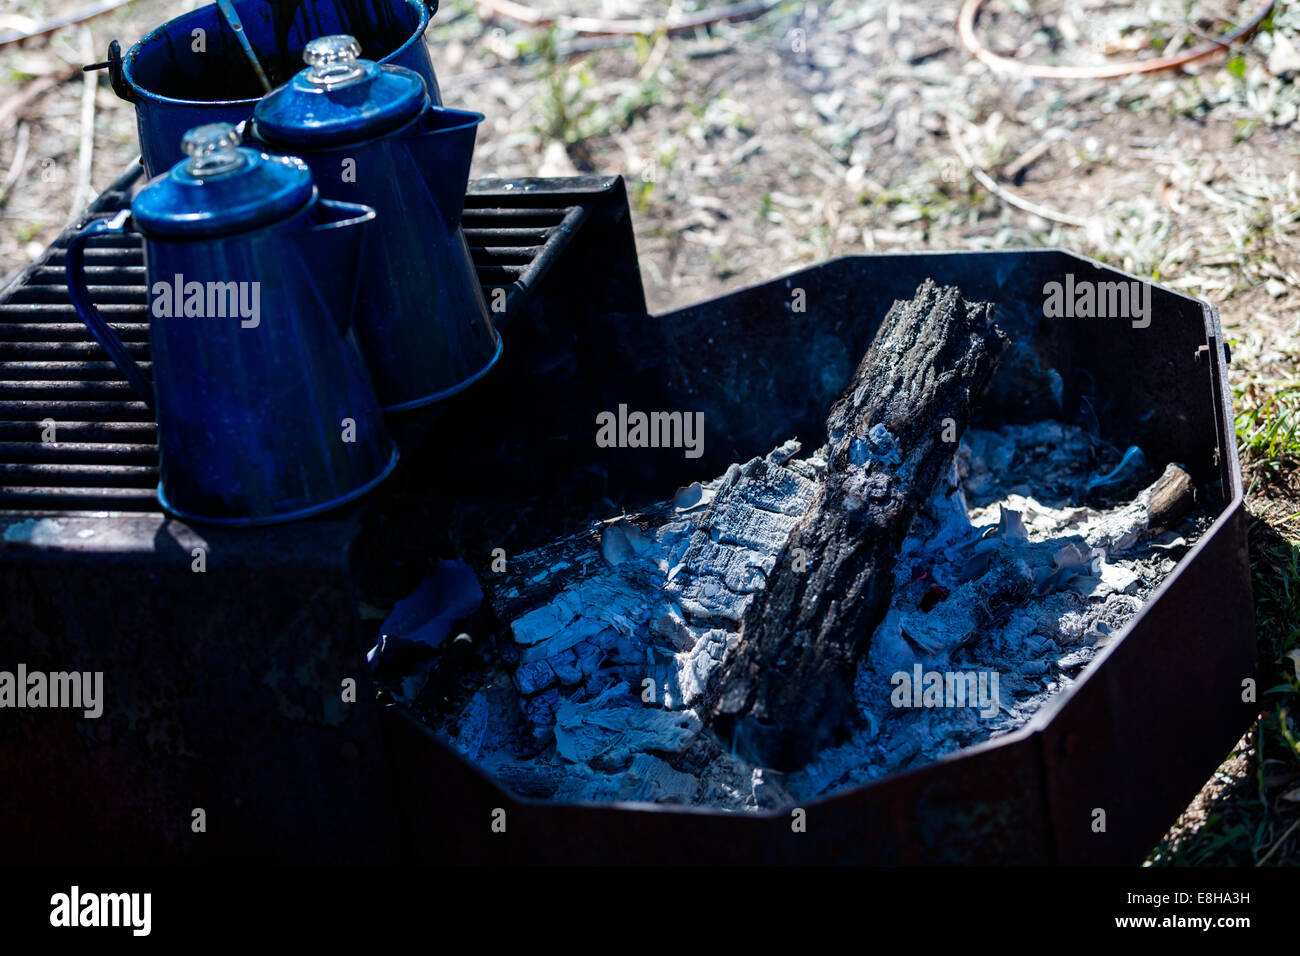 Pots Boiling Water On Camping Fire Pit With Wood